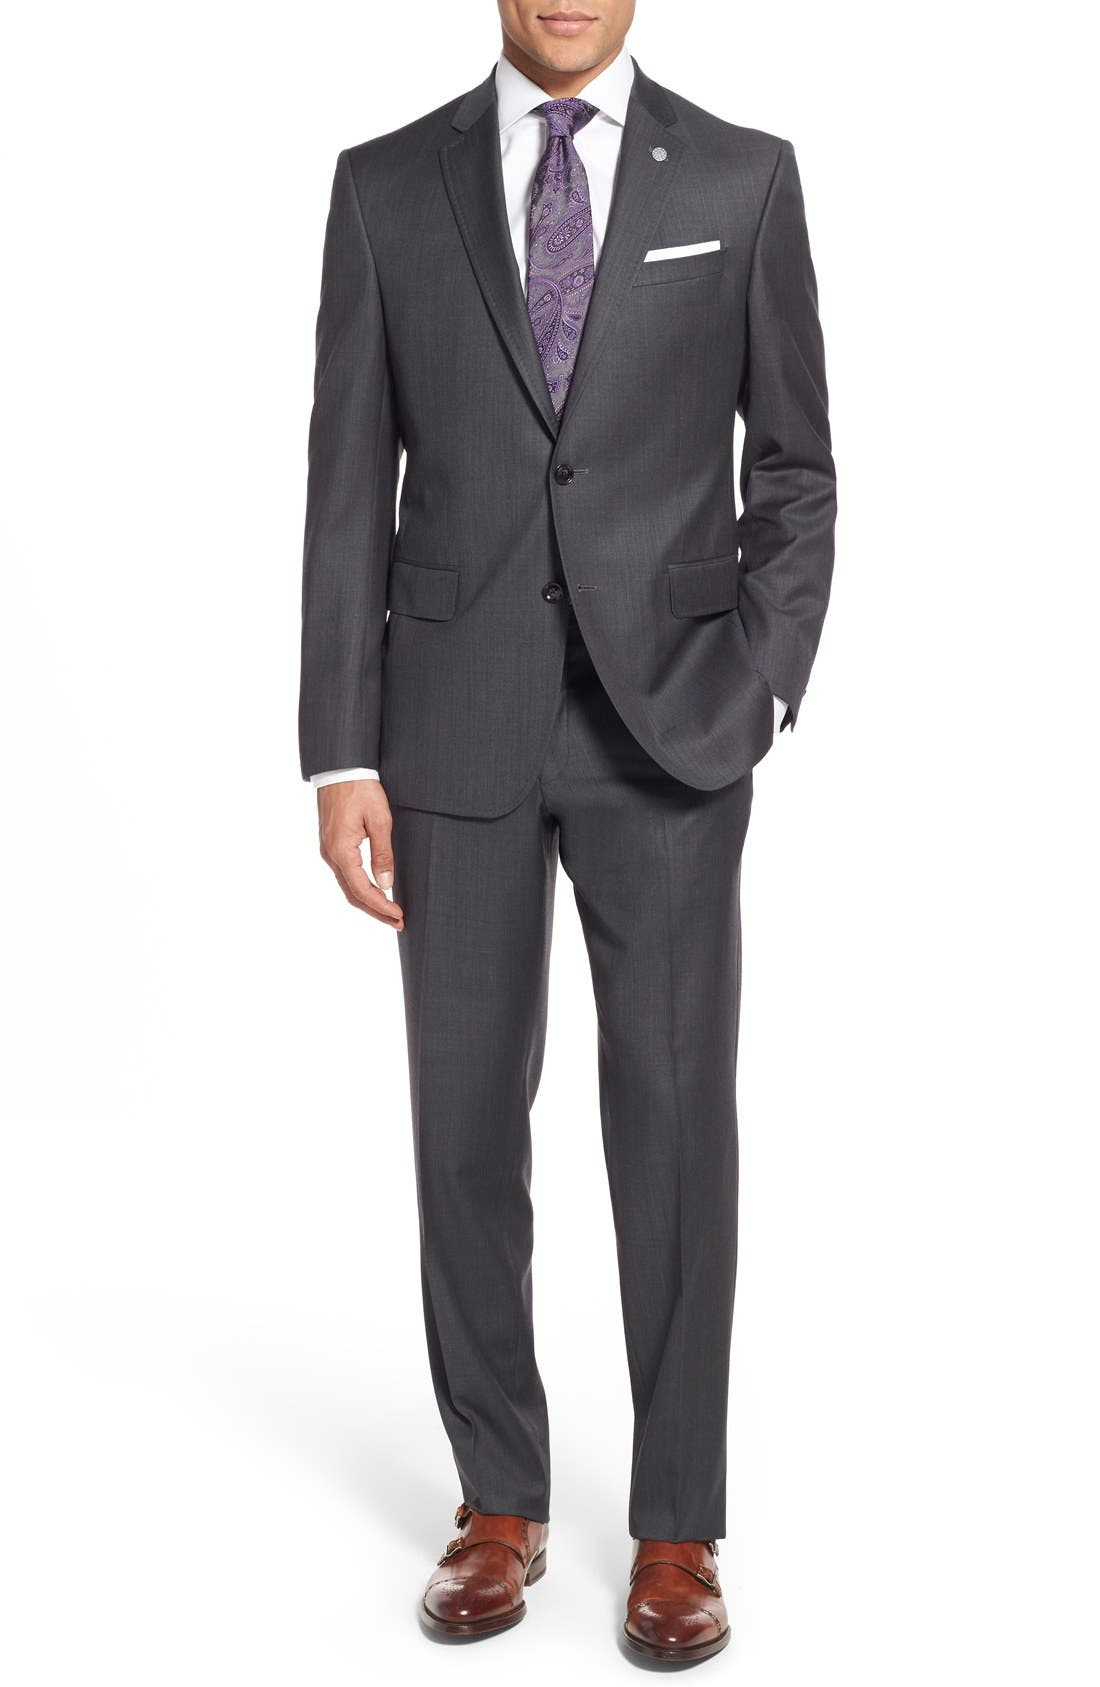 Alternate Image 1 Selected - Ted Baker London 'Jay' Trim Fit Solid Wool Suit